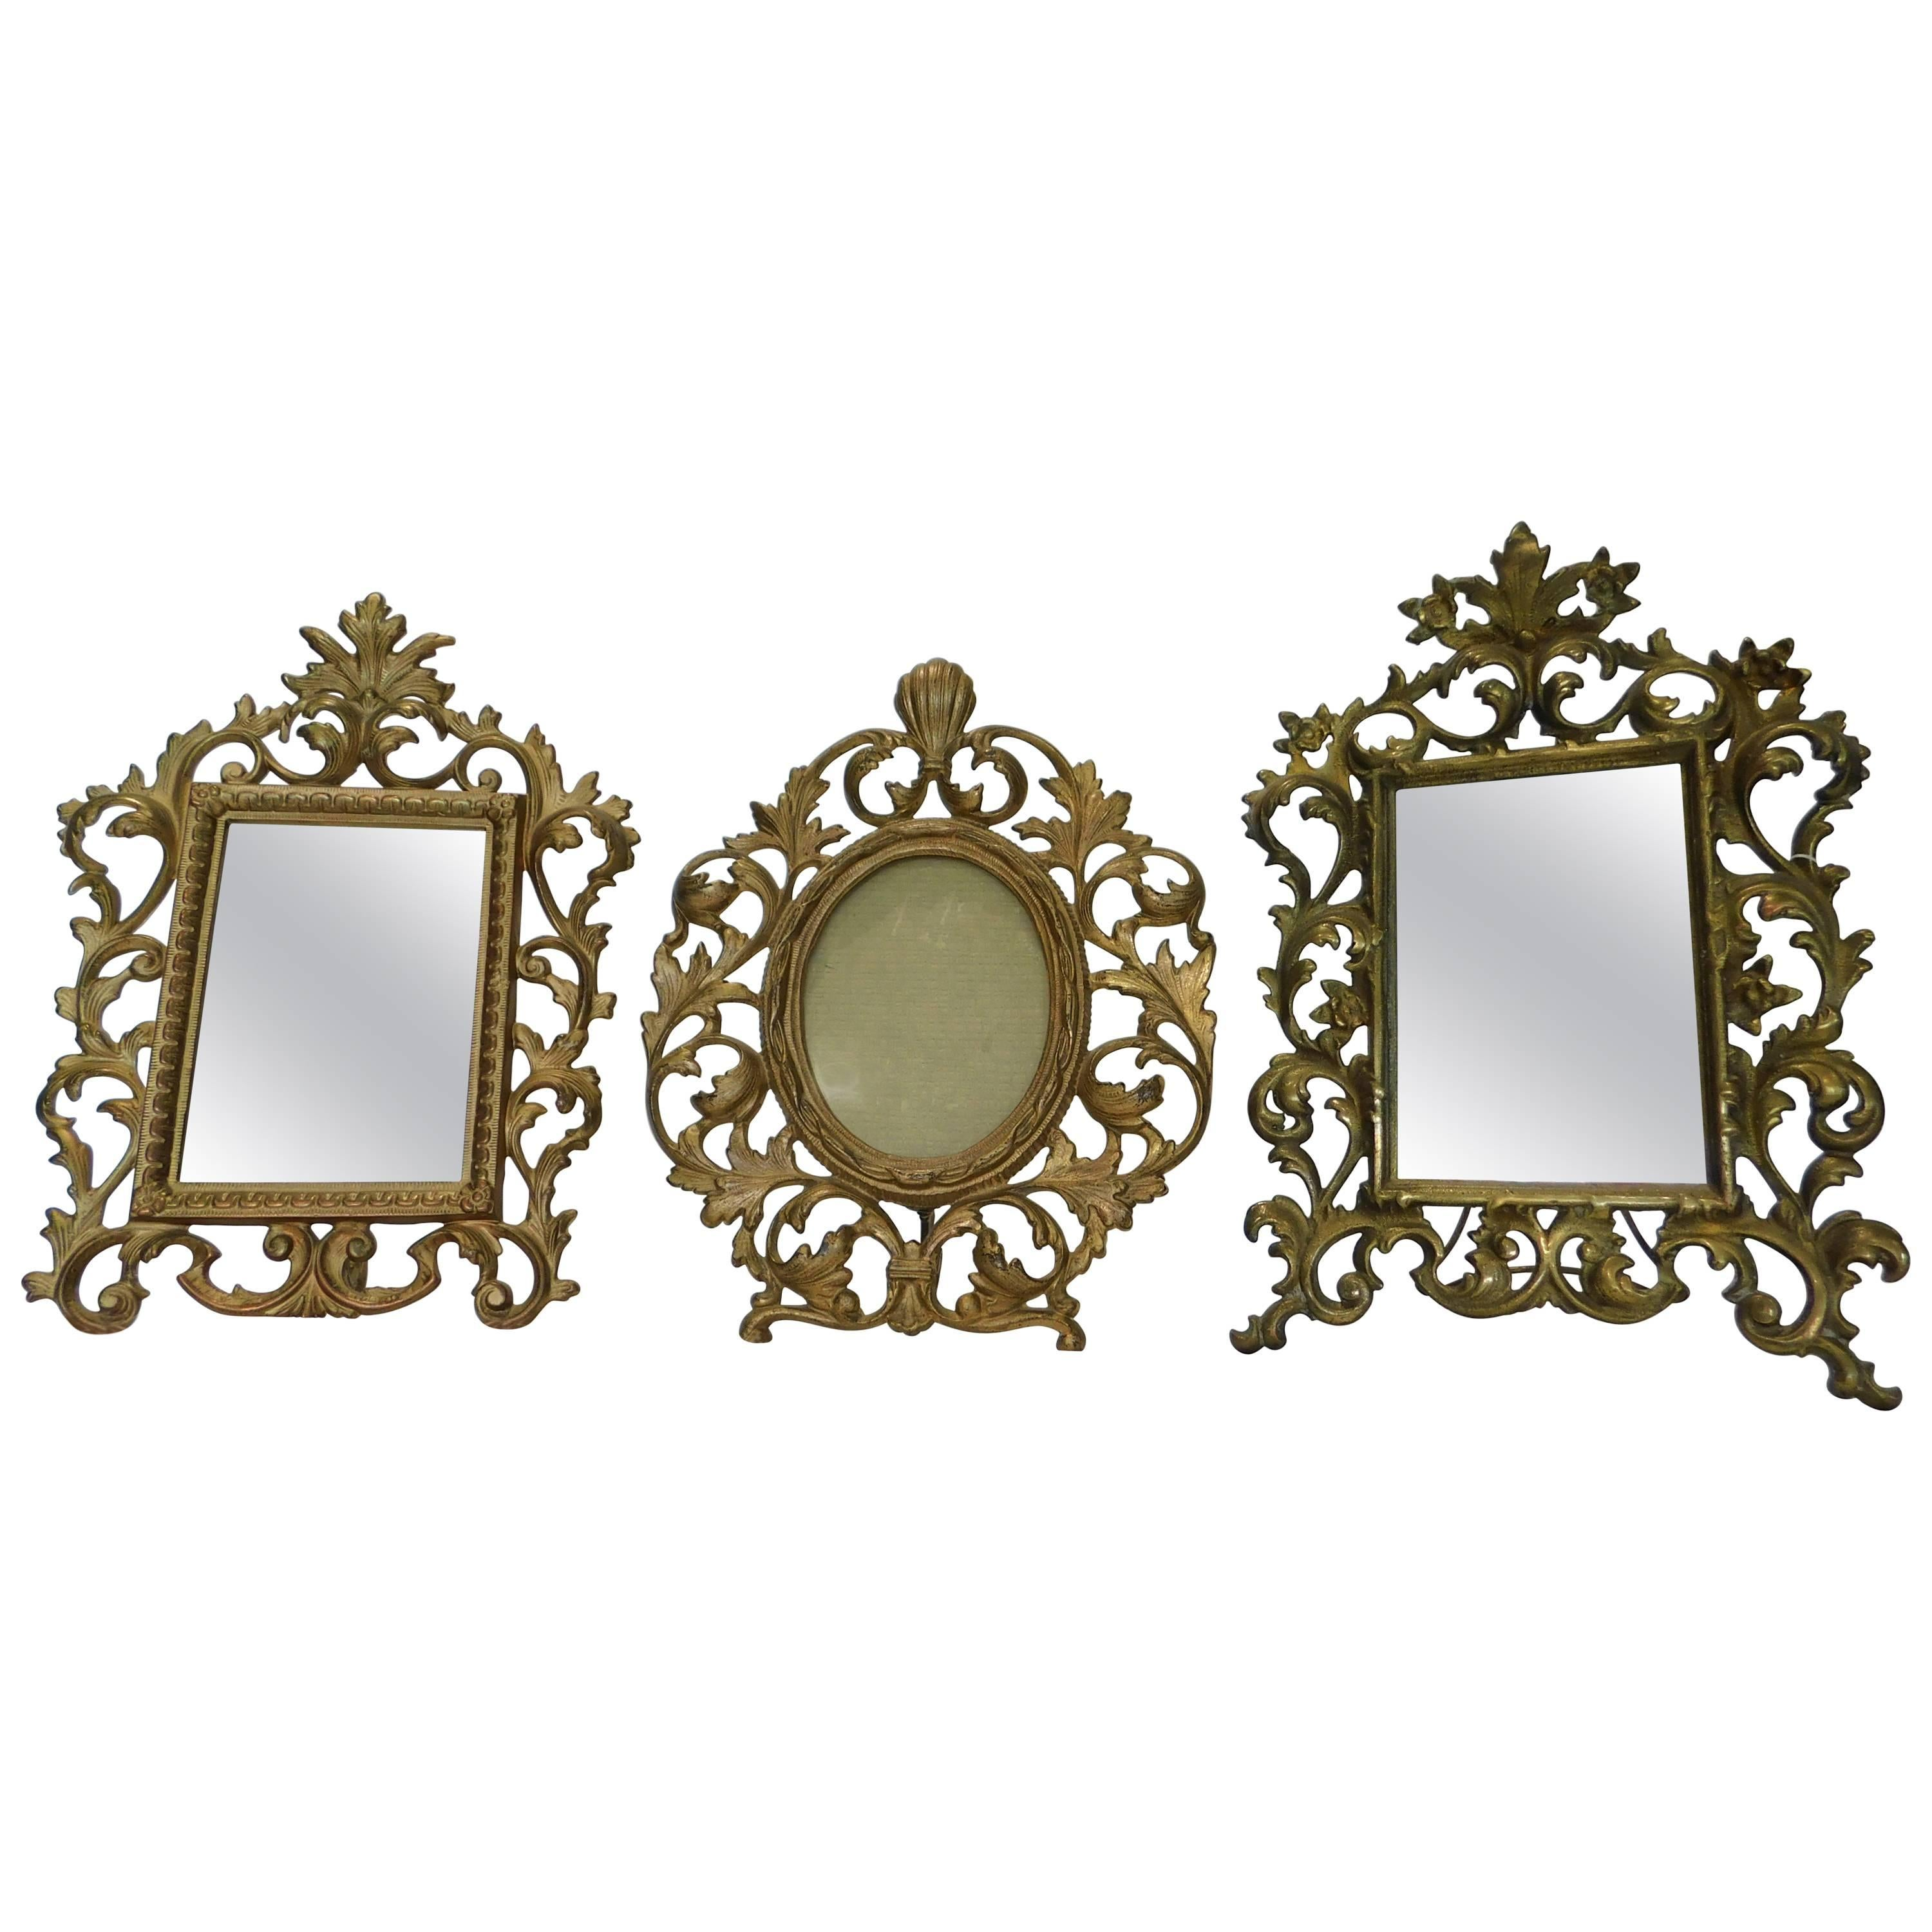 3 English 19th Century Gilt Bronze Antique Table Vanity Mirrors and Oval Frame